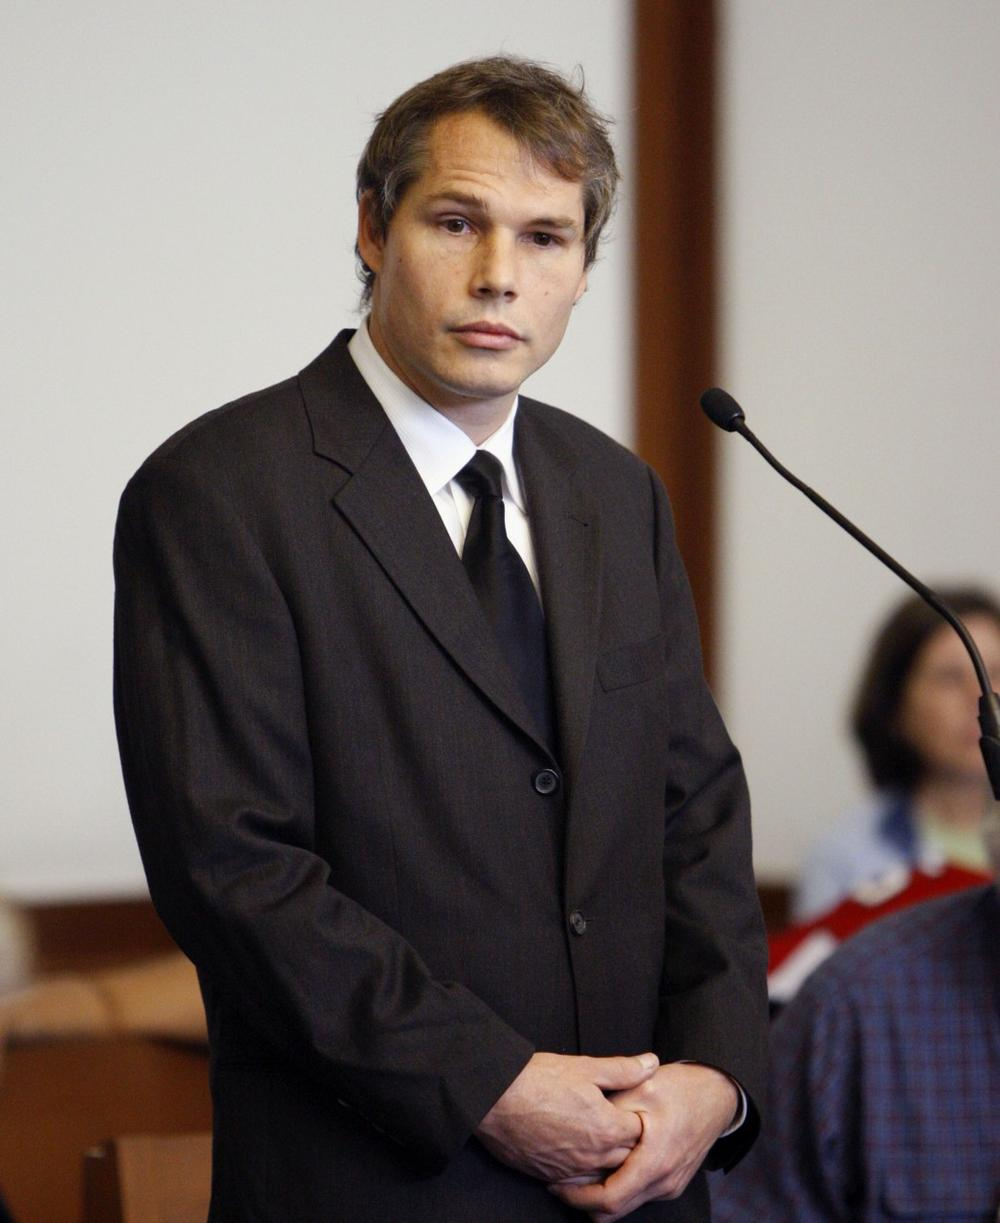 Artist Shepard Fairey stands in Boston Municipal Court on Friday during a status hearing in connection with 13 vandalism charges around Boston. (AP Photo)